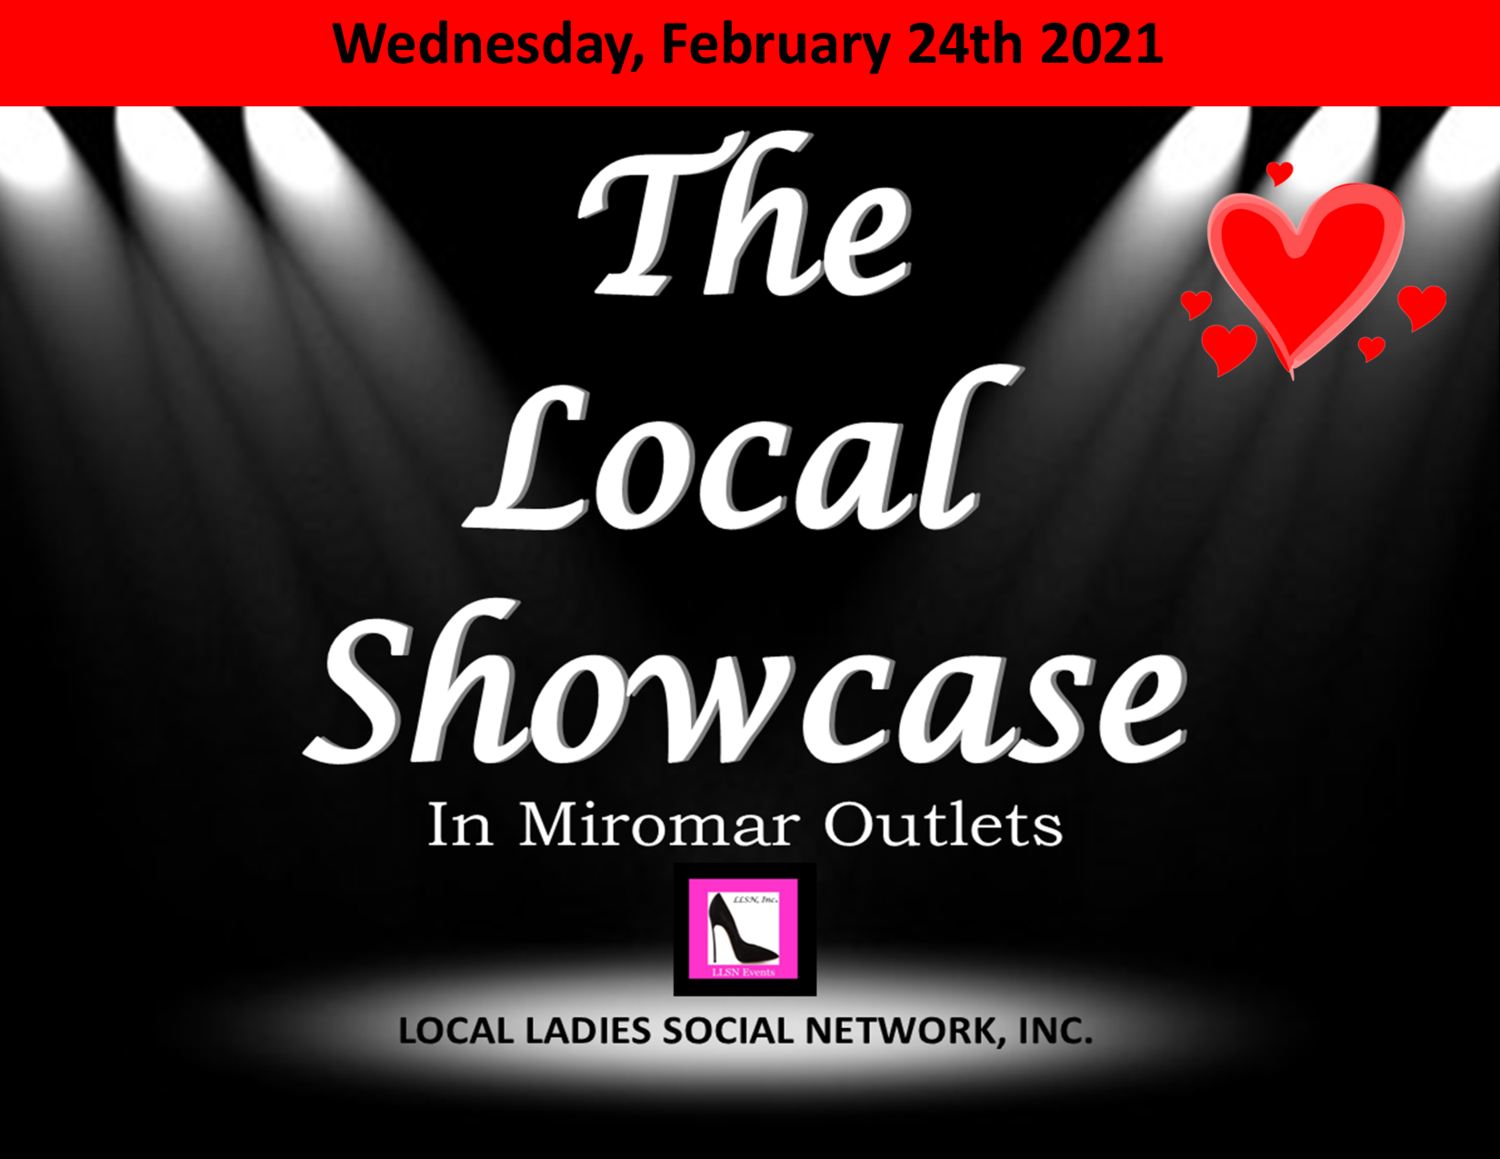 Wednesday, February 24th 11am-7pm.